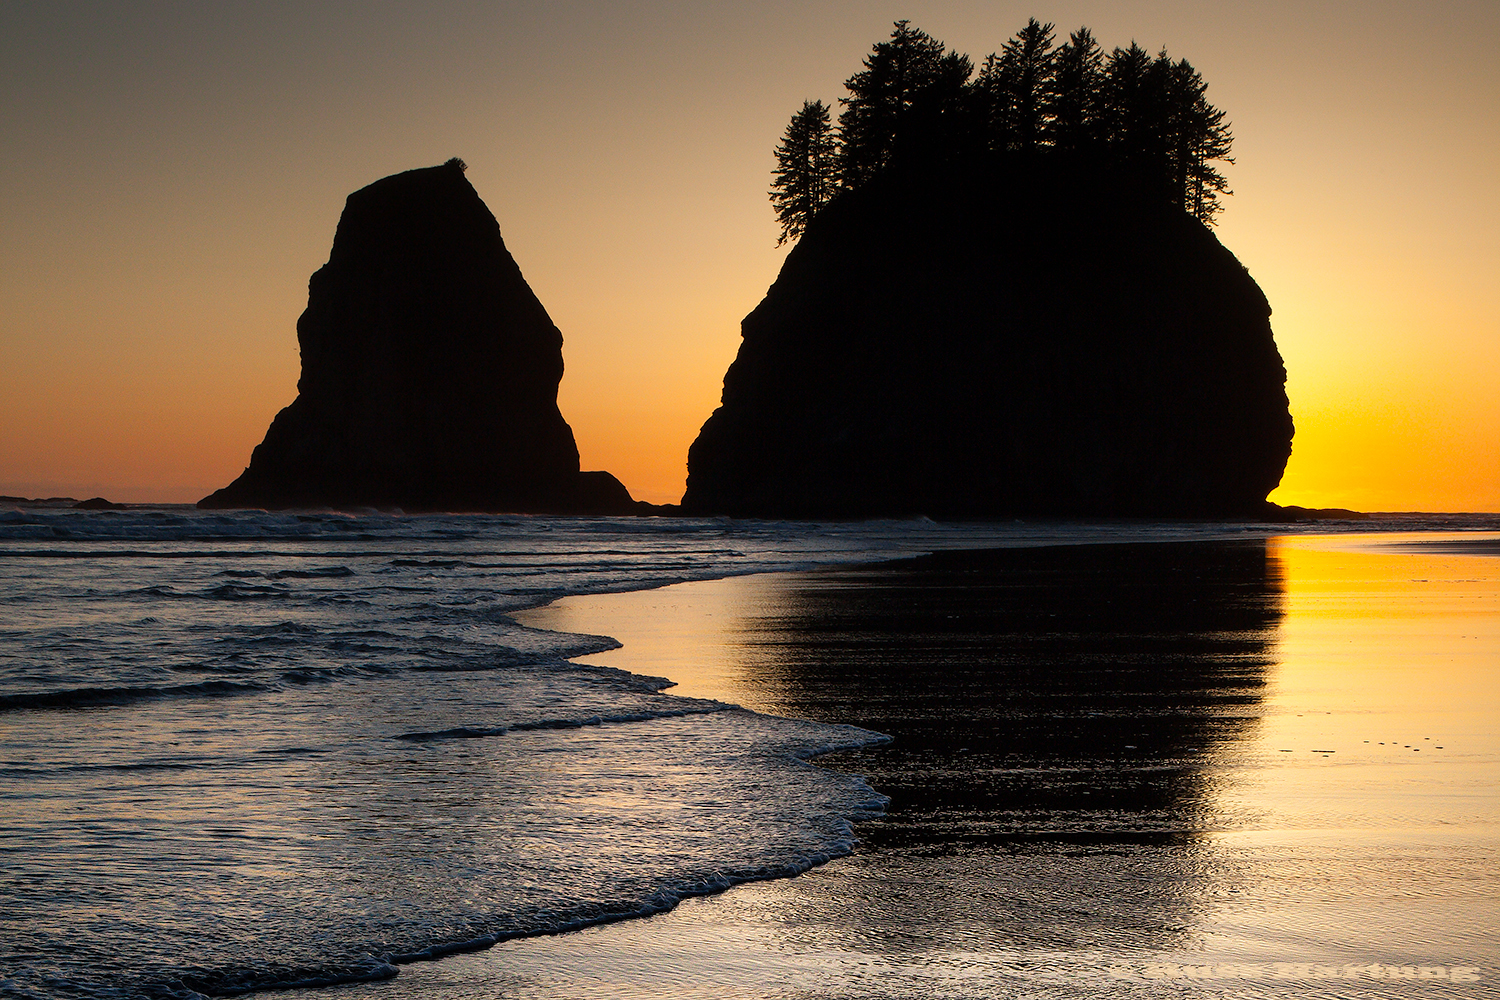 Sea stacks on Second Beach at sunset. This is a wilderness beach in the Olympic National Park in Washington State.